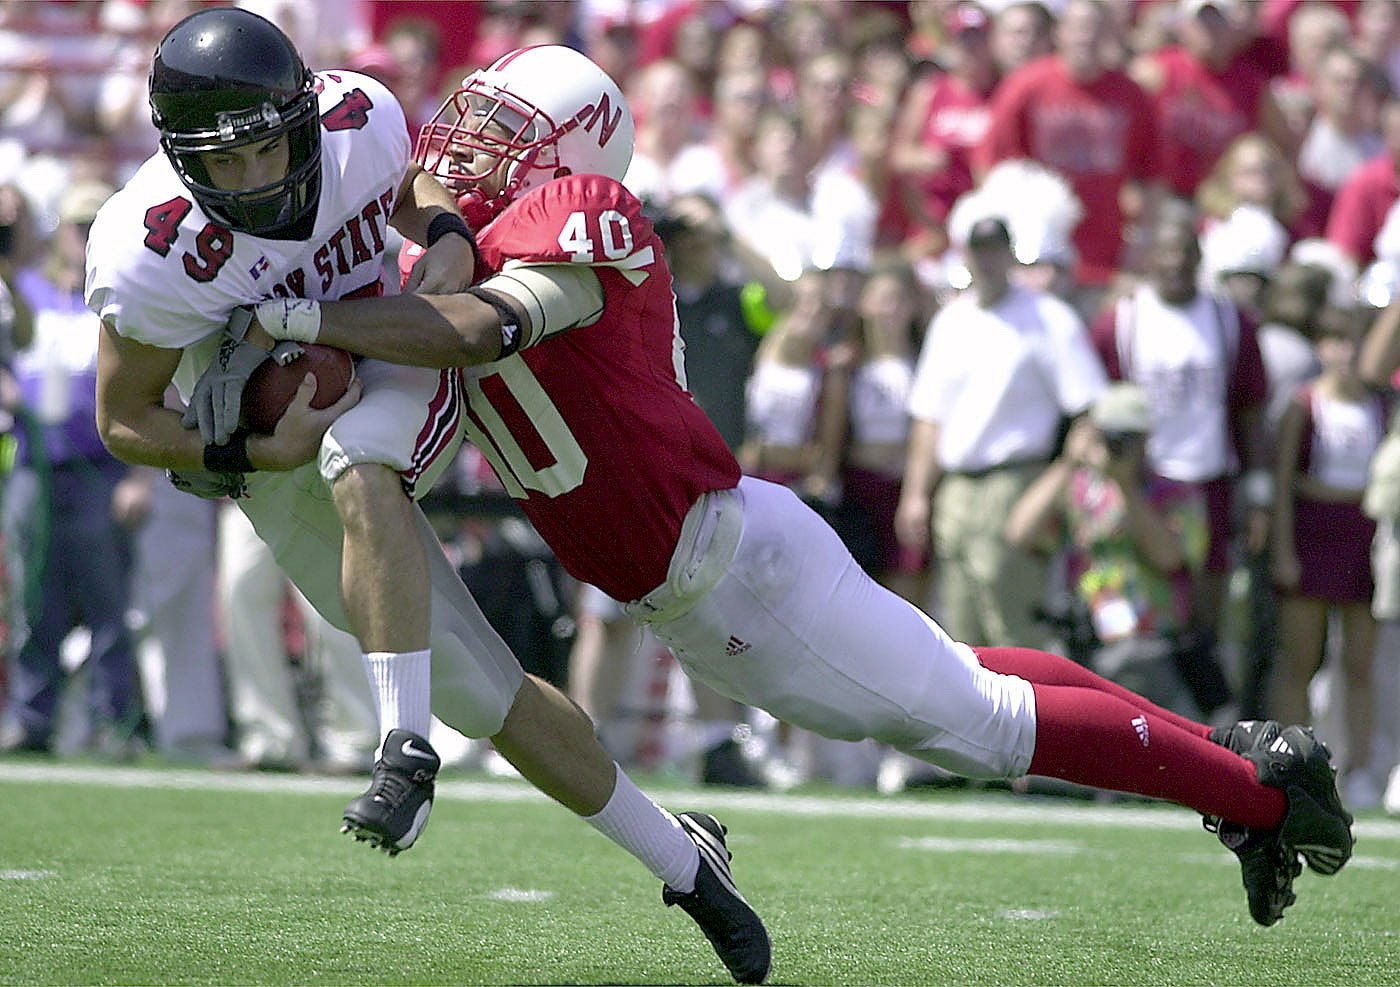 Troy State punter Lance Lieb (49) is tackled by Nebraska's Lannie Hopkins after a bad snapped forced Lieb to try and run in the first half of the 2001 game between the Trojans and Cornhuskers.